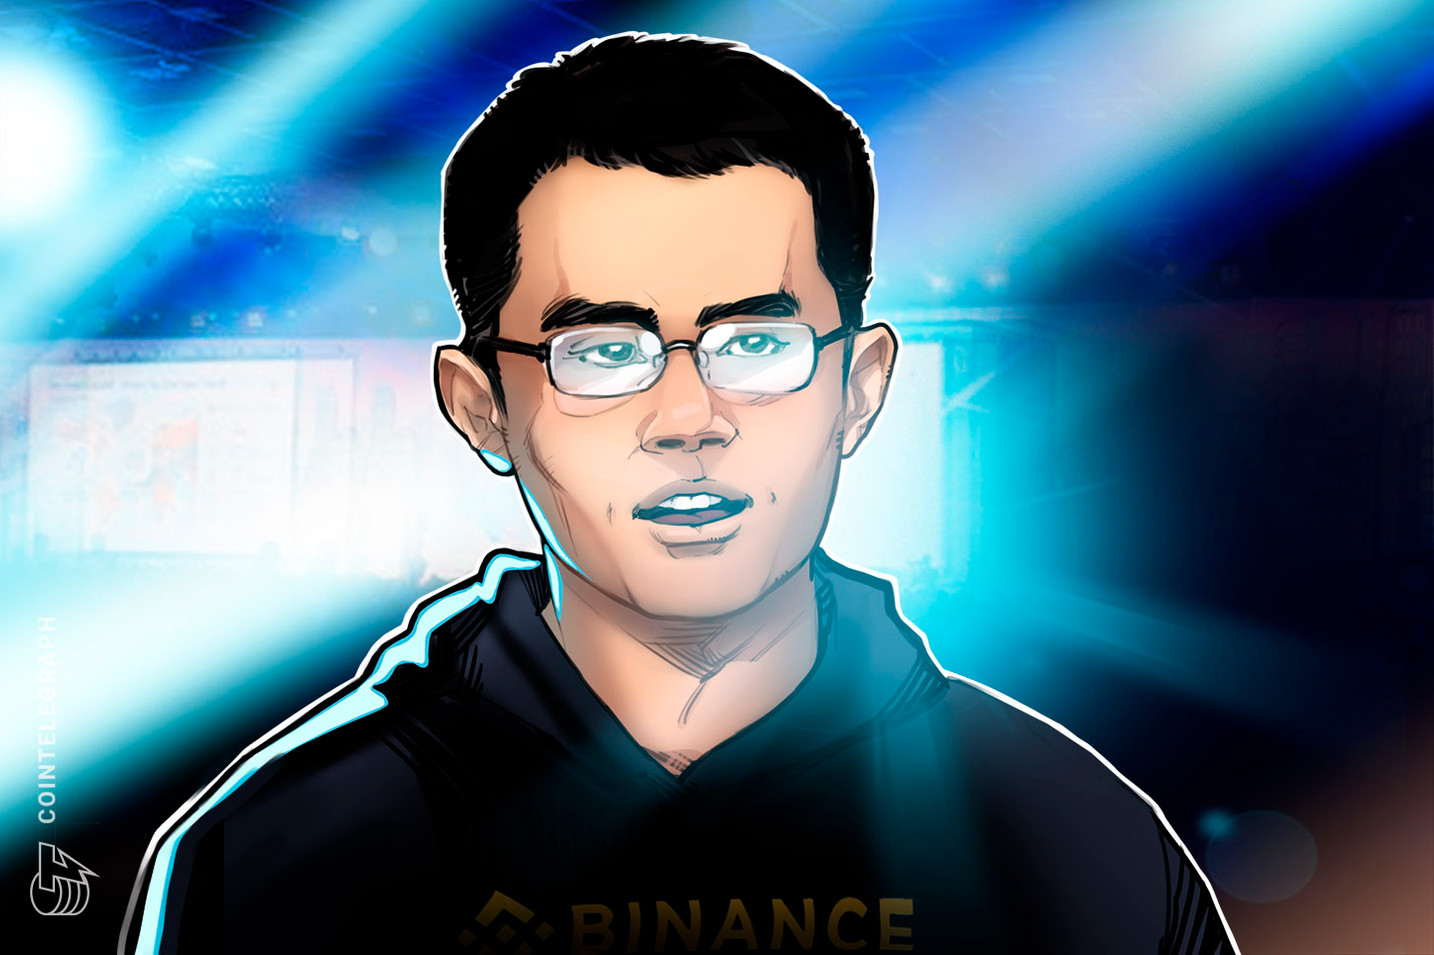 New User Registrations on Binance Approach All-Time High Amid Bitcoin Halving